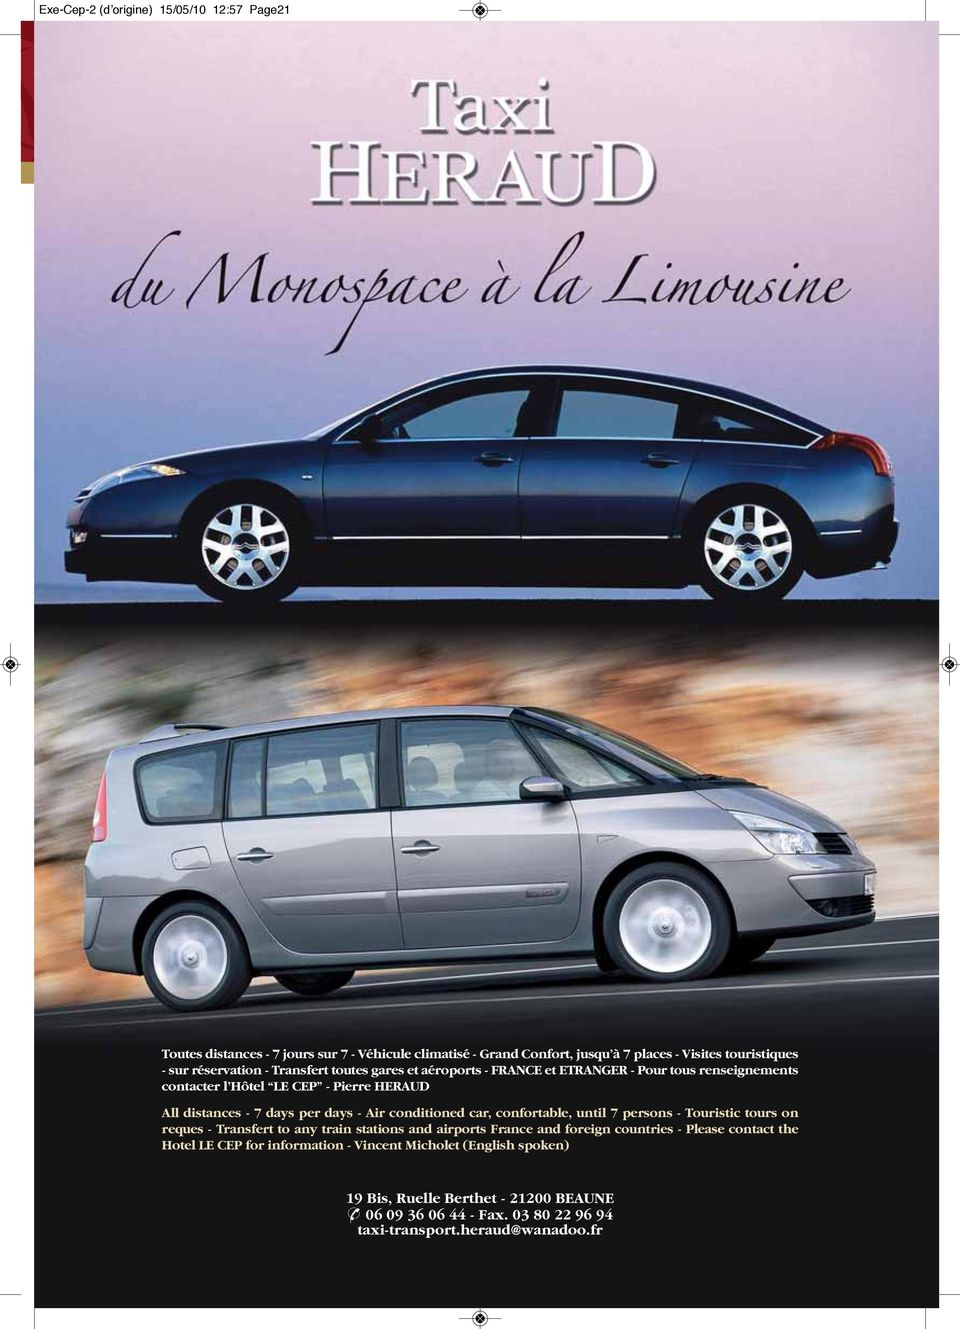 - Air conditioned car, confortable, until 7 persons - Touristic tours on reques - Transfert to any train stations and airports France and foreign countries - Please